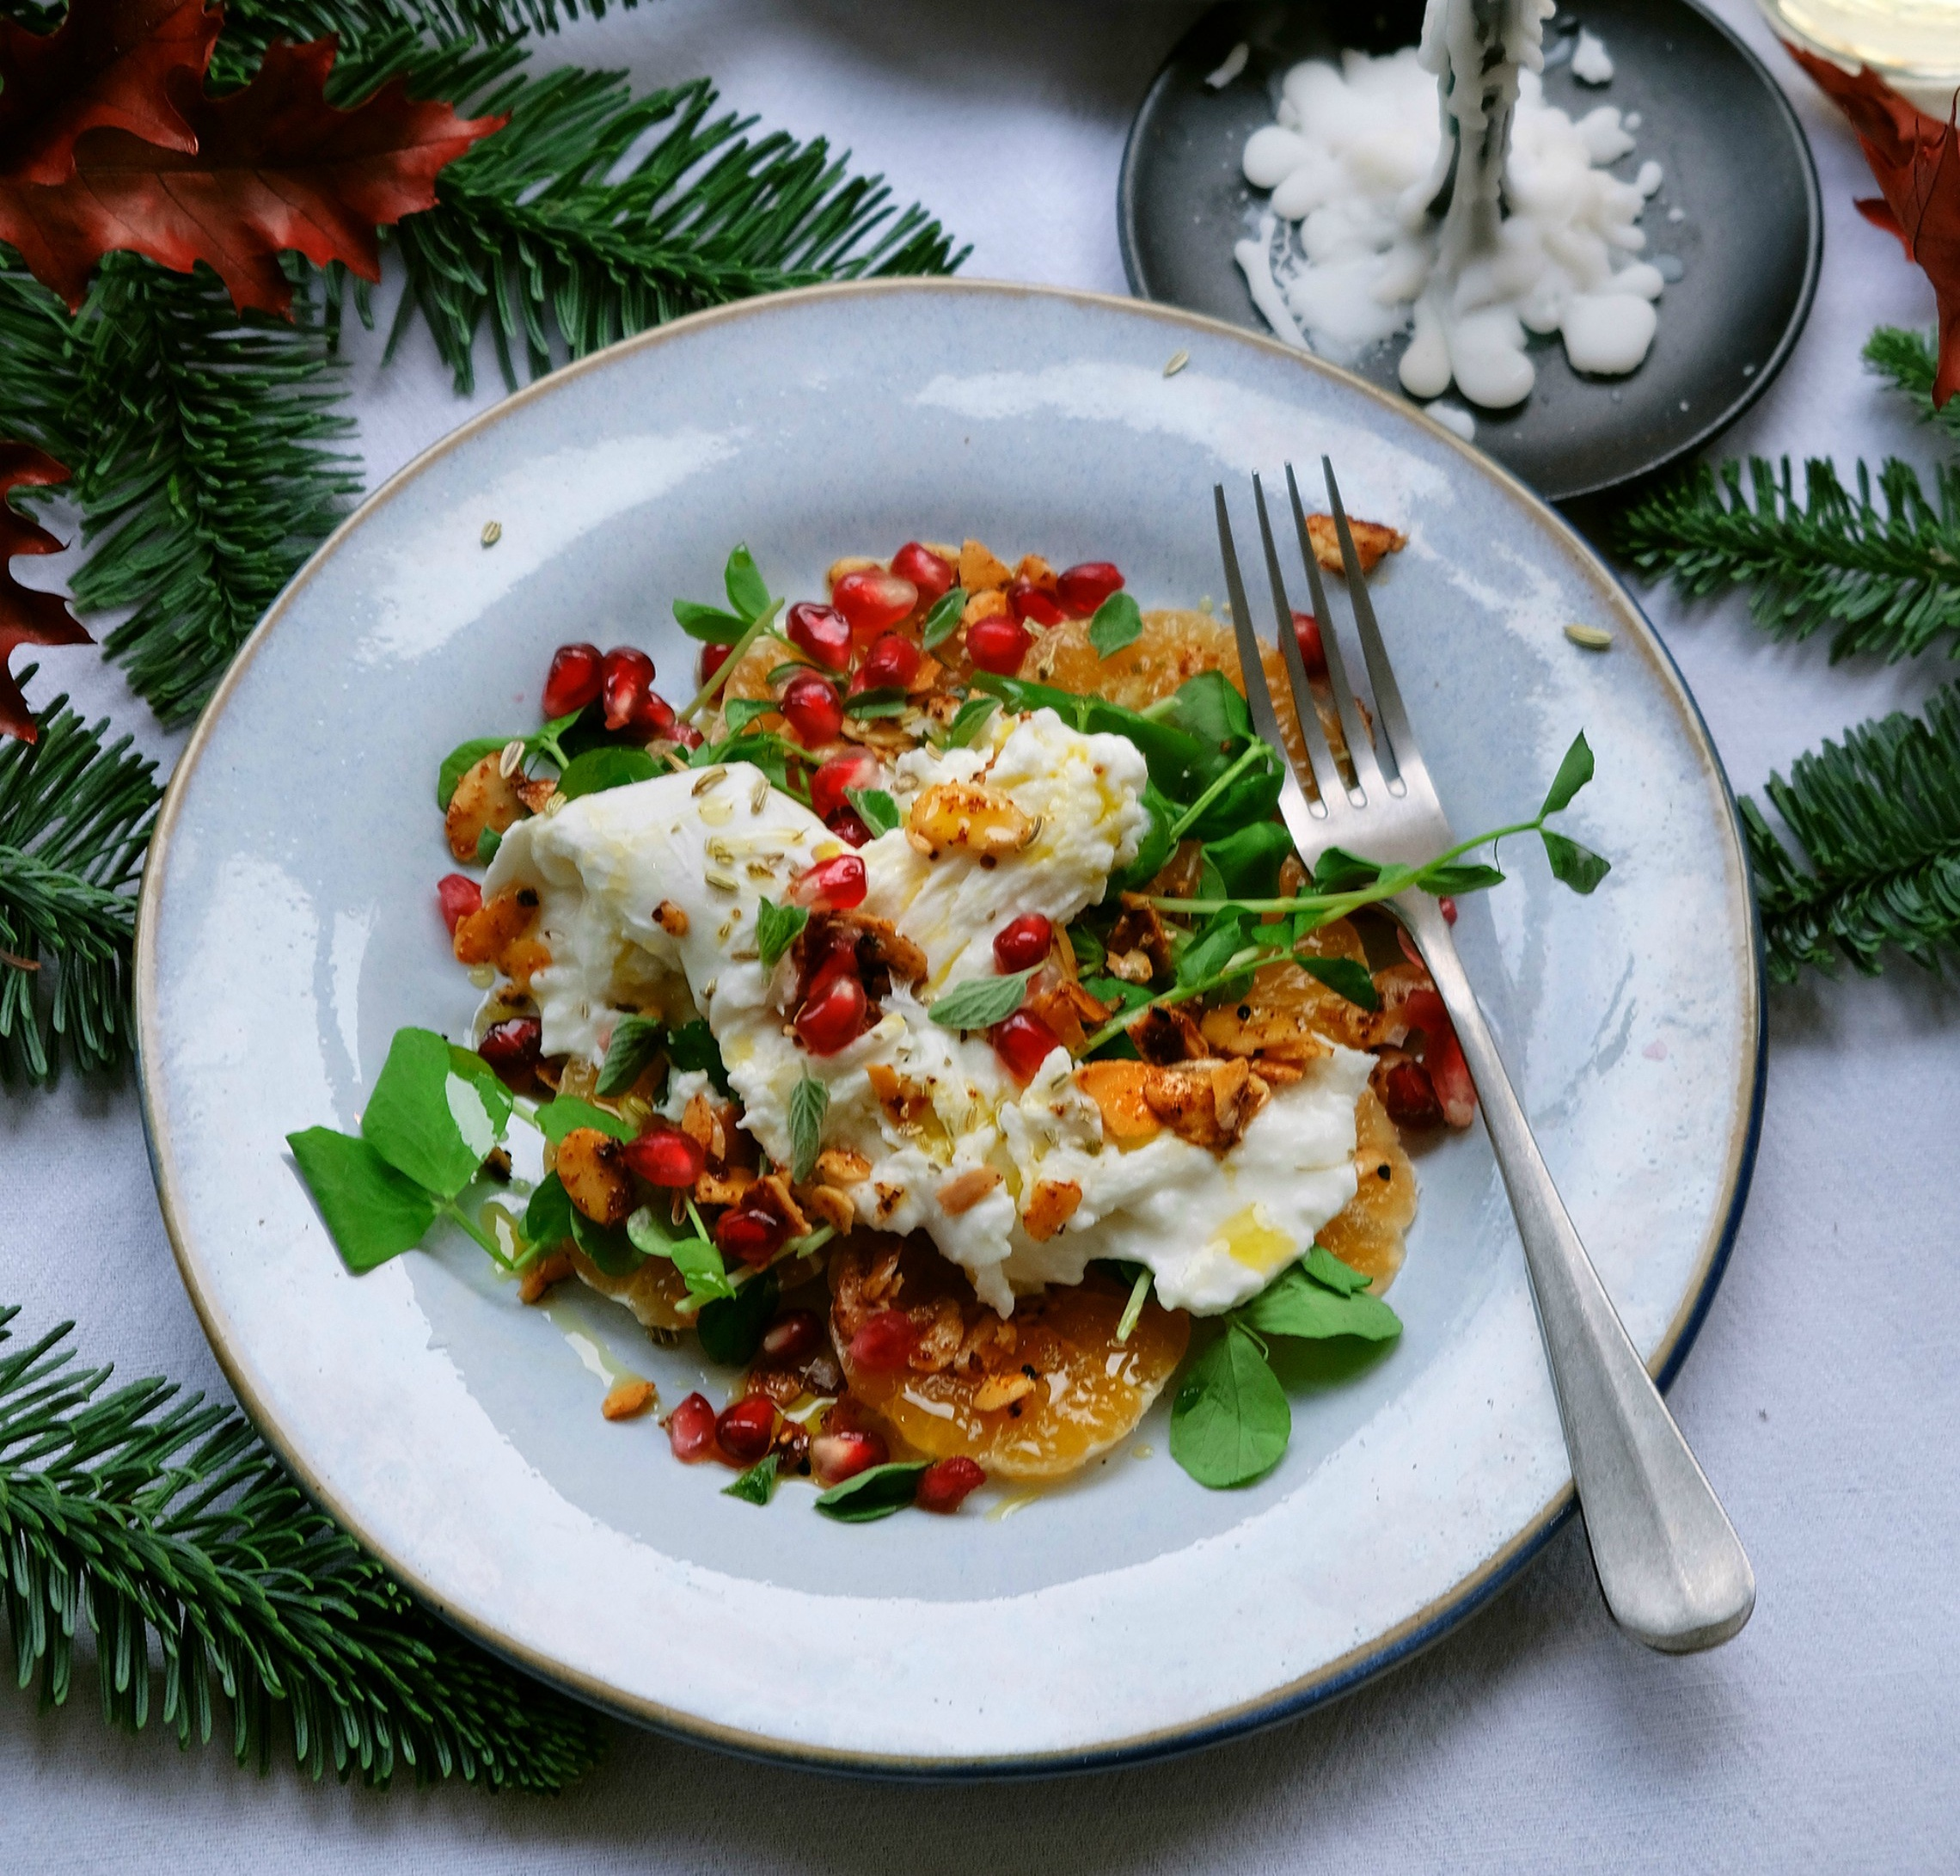 Wild By Tart S Buffalo Mozzarella With Clementine Recipe Lunch And Dinner Recipes Luxury London